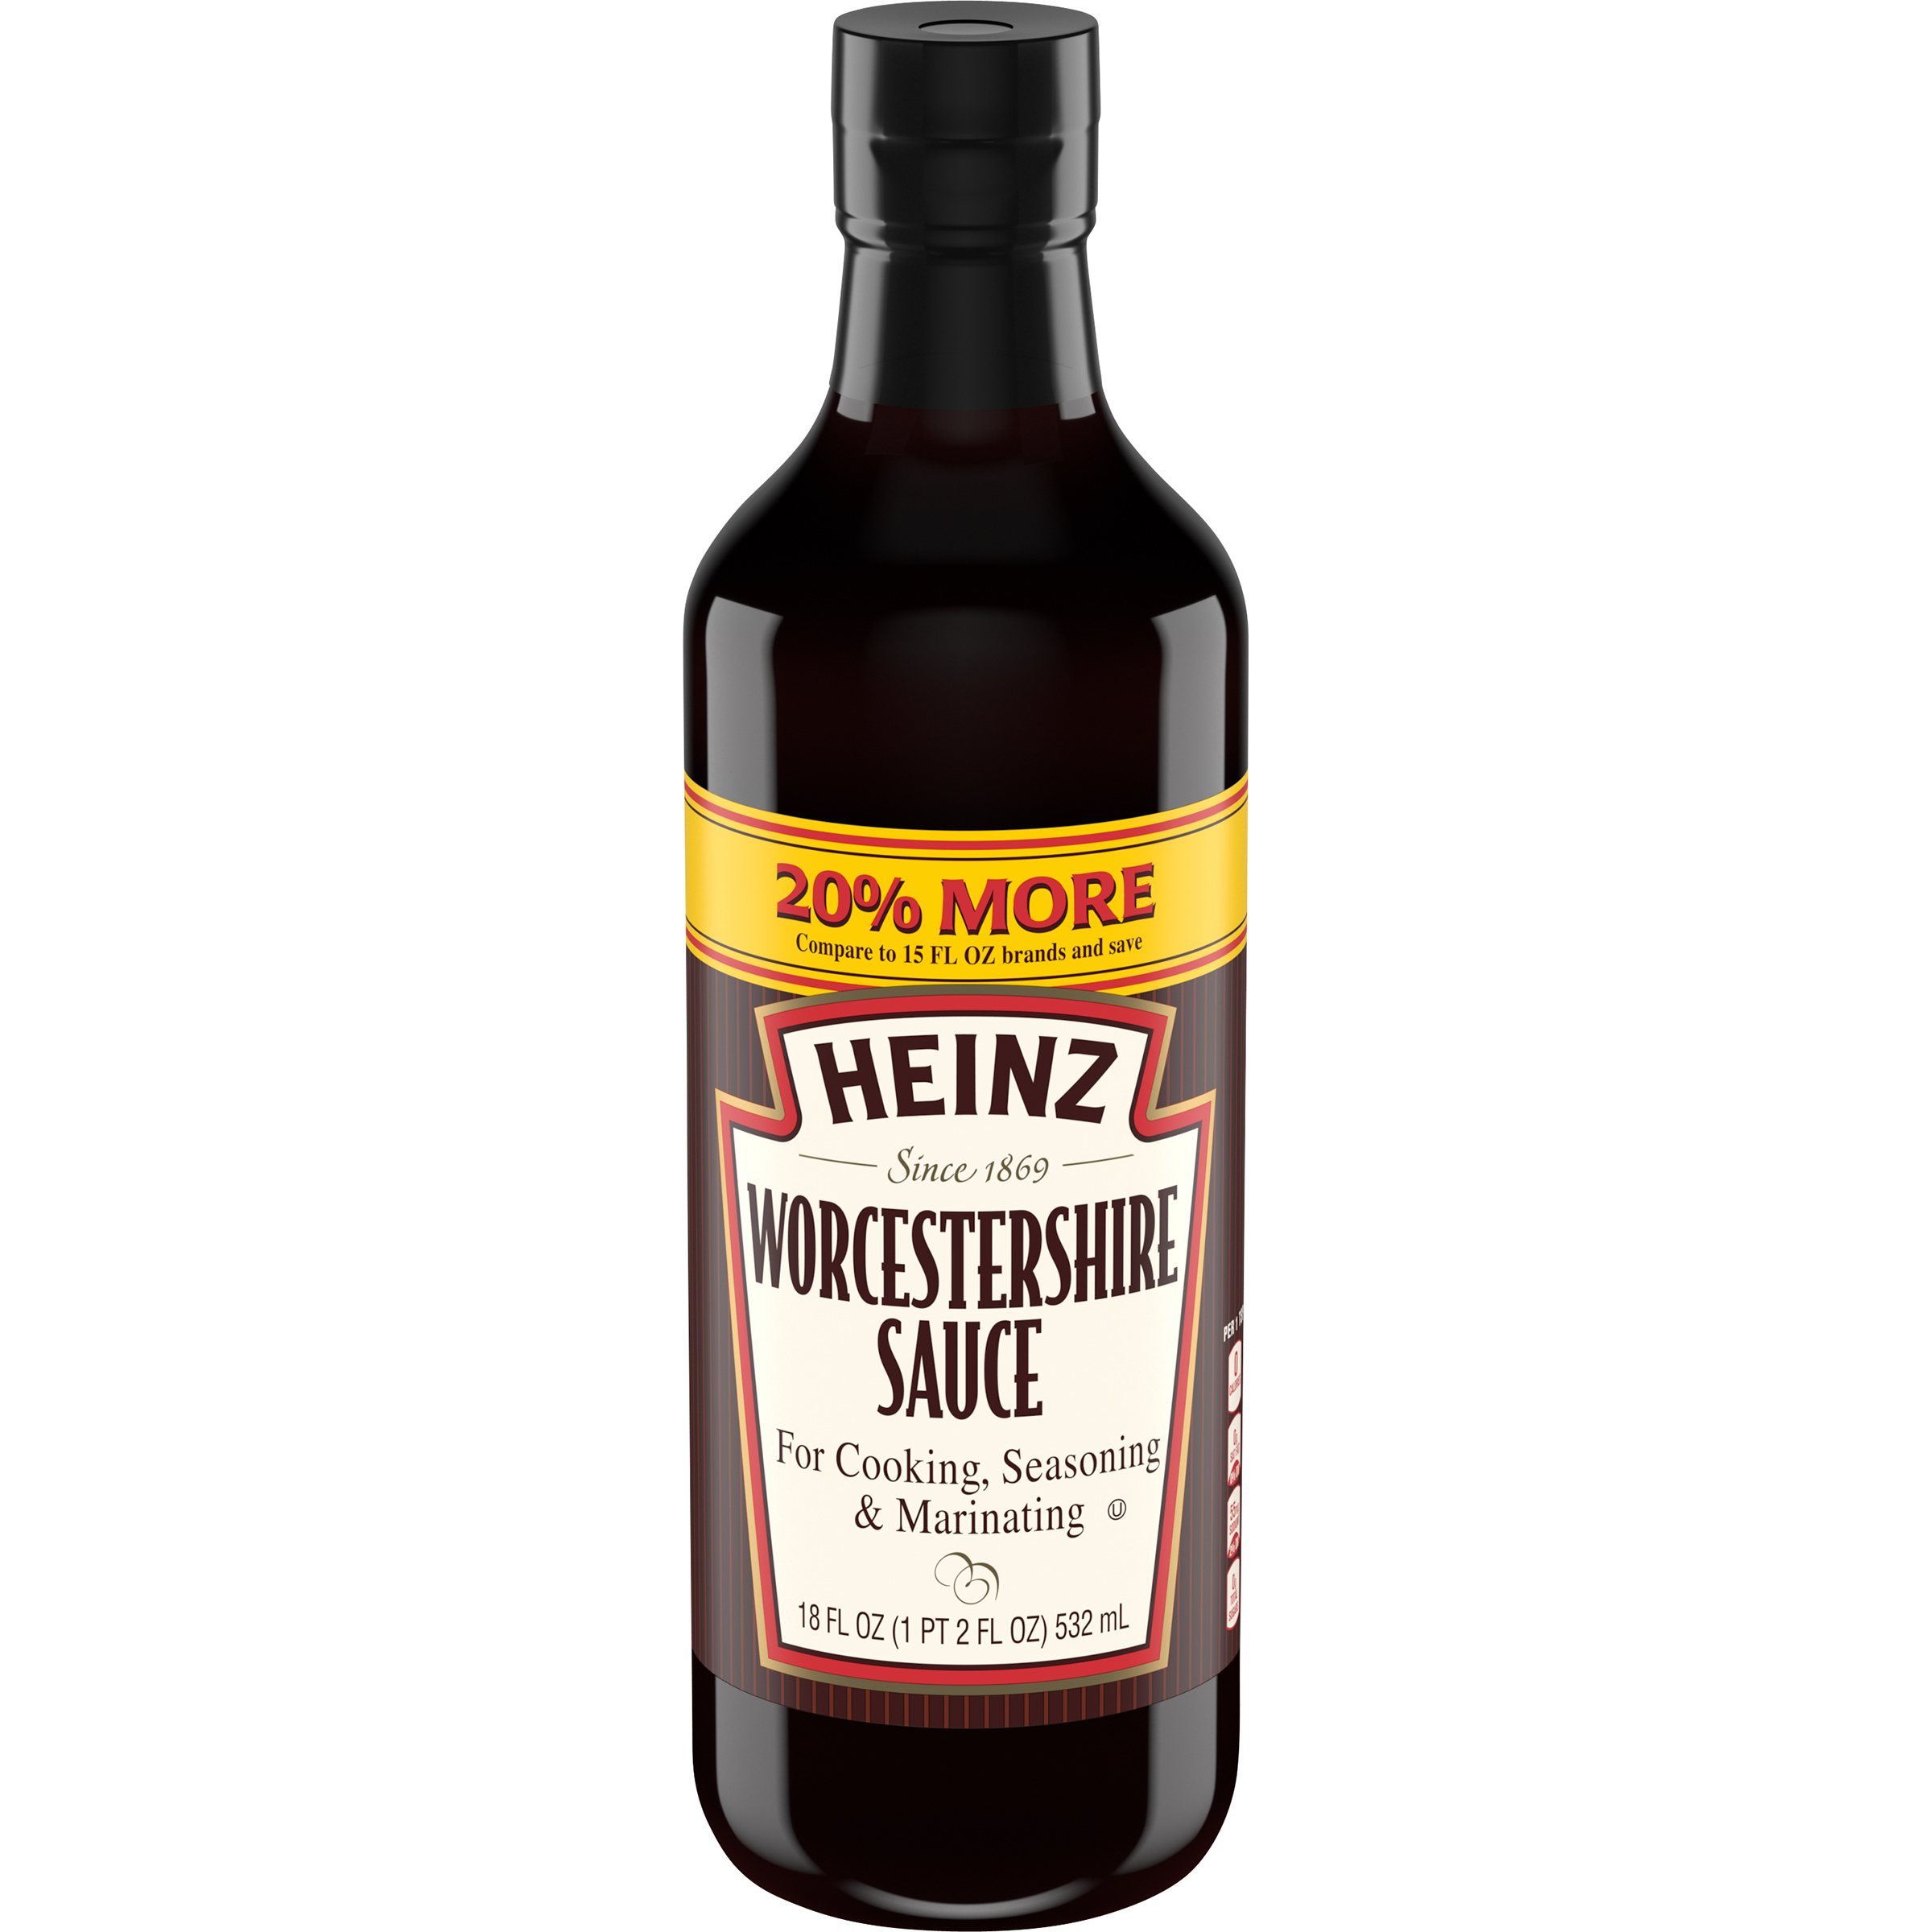 Heinz Worcestershire Sauce 18 fl oz Bottle image